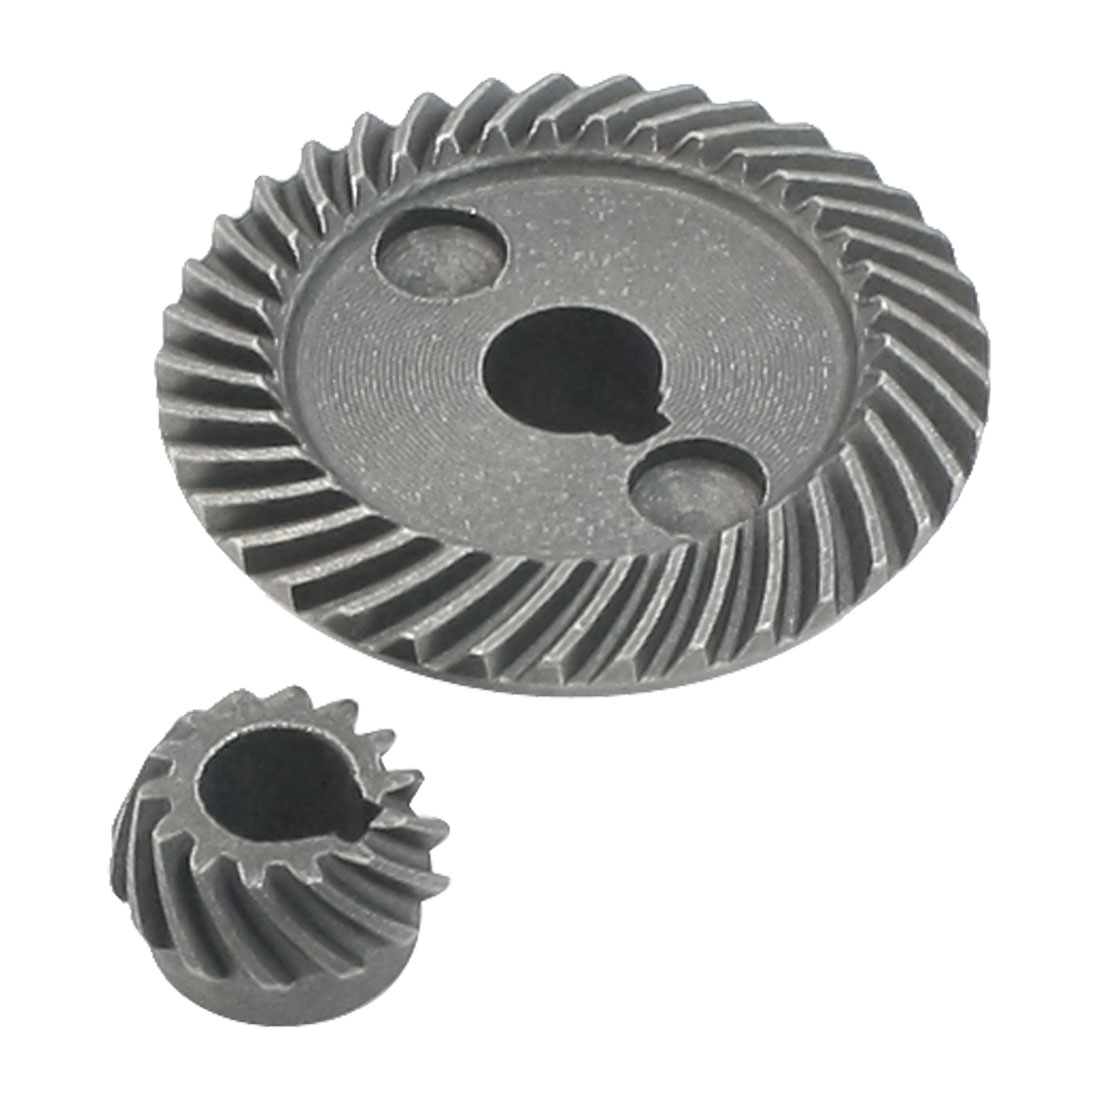 Unique Bargains Replacement Part Spiral Bevel Gear Pinion Set for 155 Angle Grinder